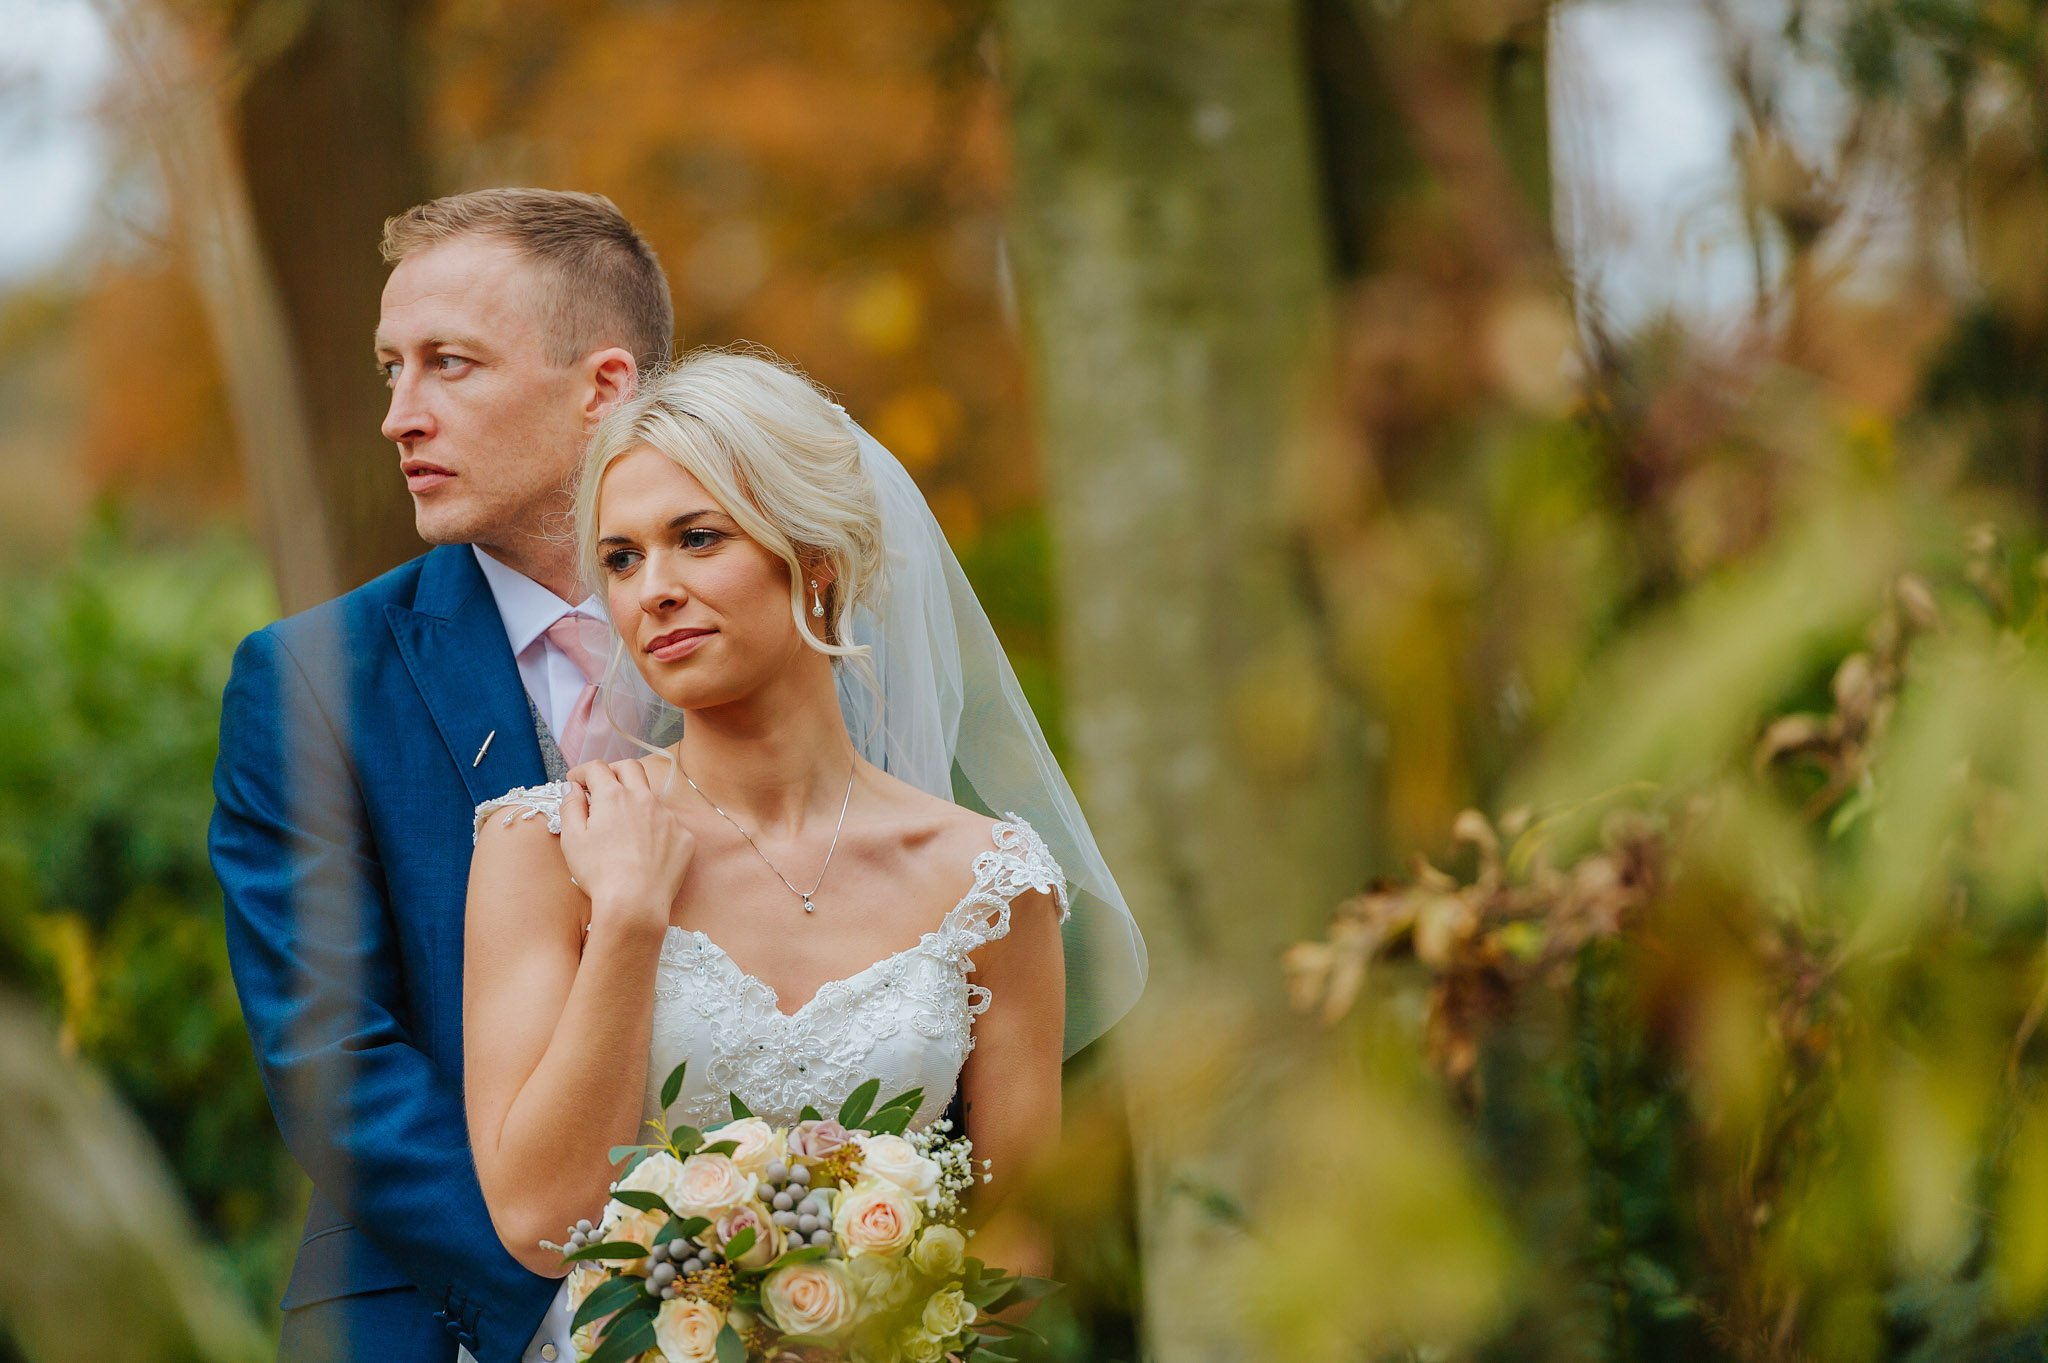 lemore manor wedding herefordshire 94 - Lemore Manor wedding, Herefordshire - West Midlands | Sadie + Ken